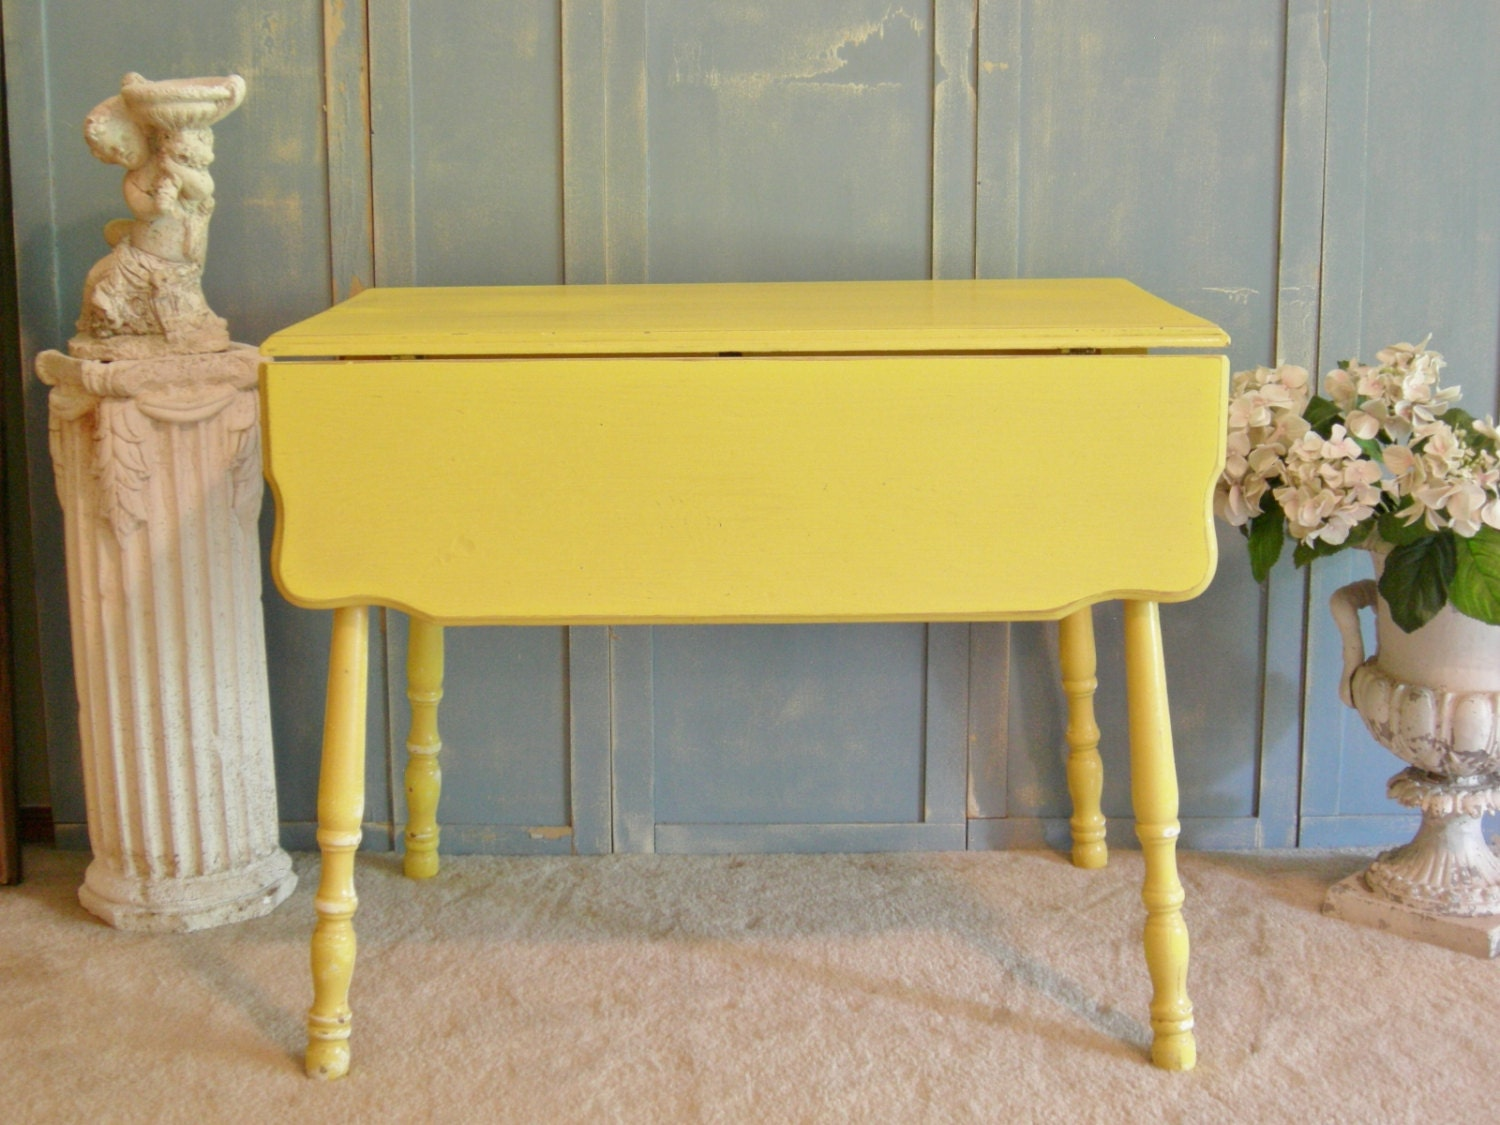 Drop leaf kitchen table shabby chic kitchen island entry - Drop leaf kitchen table ...